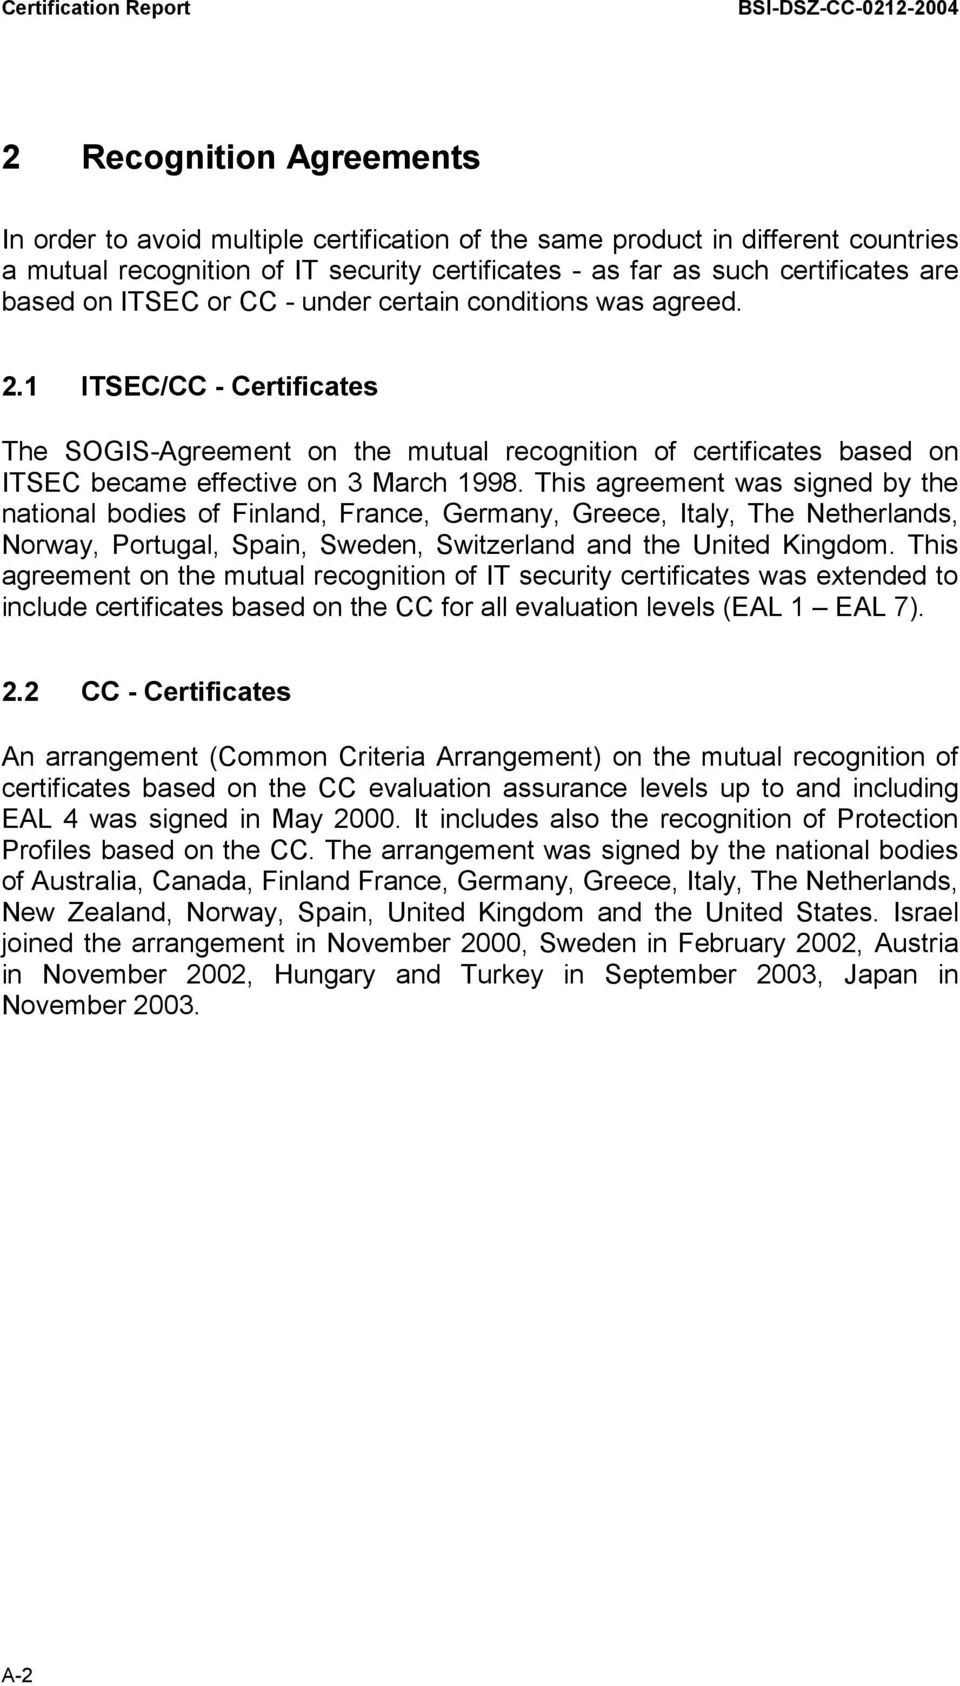 1 ITSEC/CC - Certificates The SOGIS-Agreement on the mutual recognition of certificates based on ITSEC became effective on 3 March 1998.